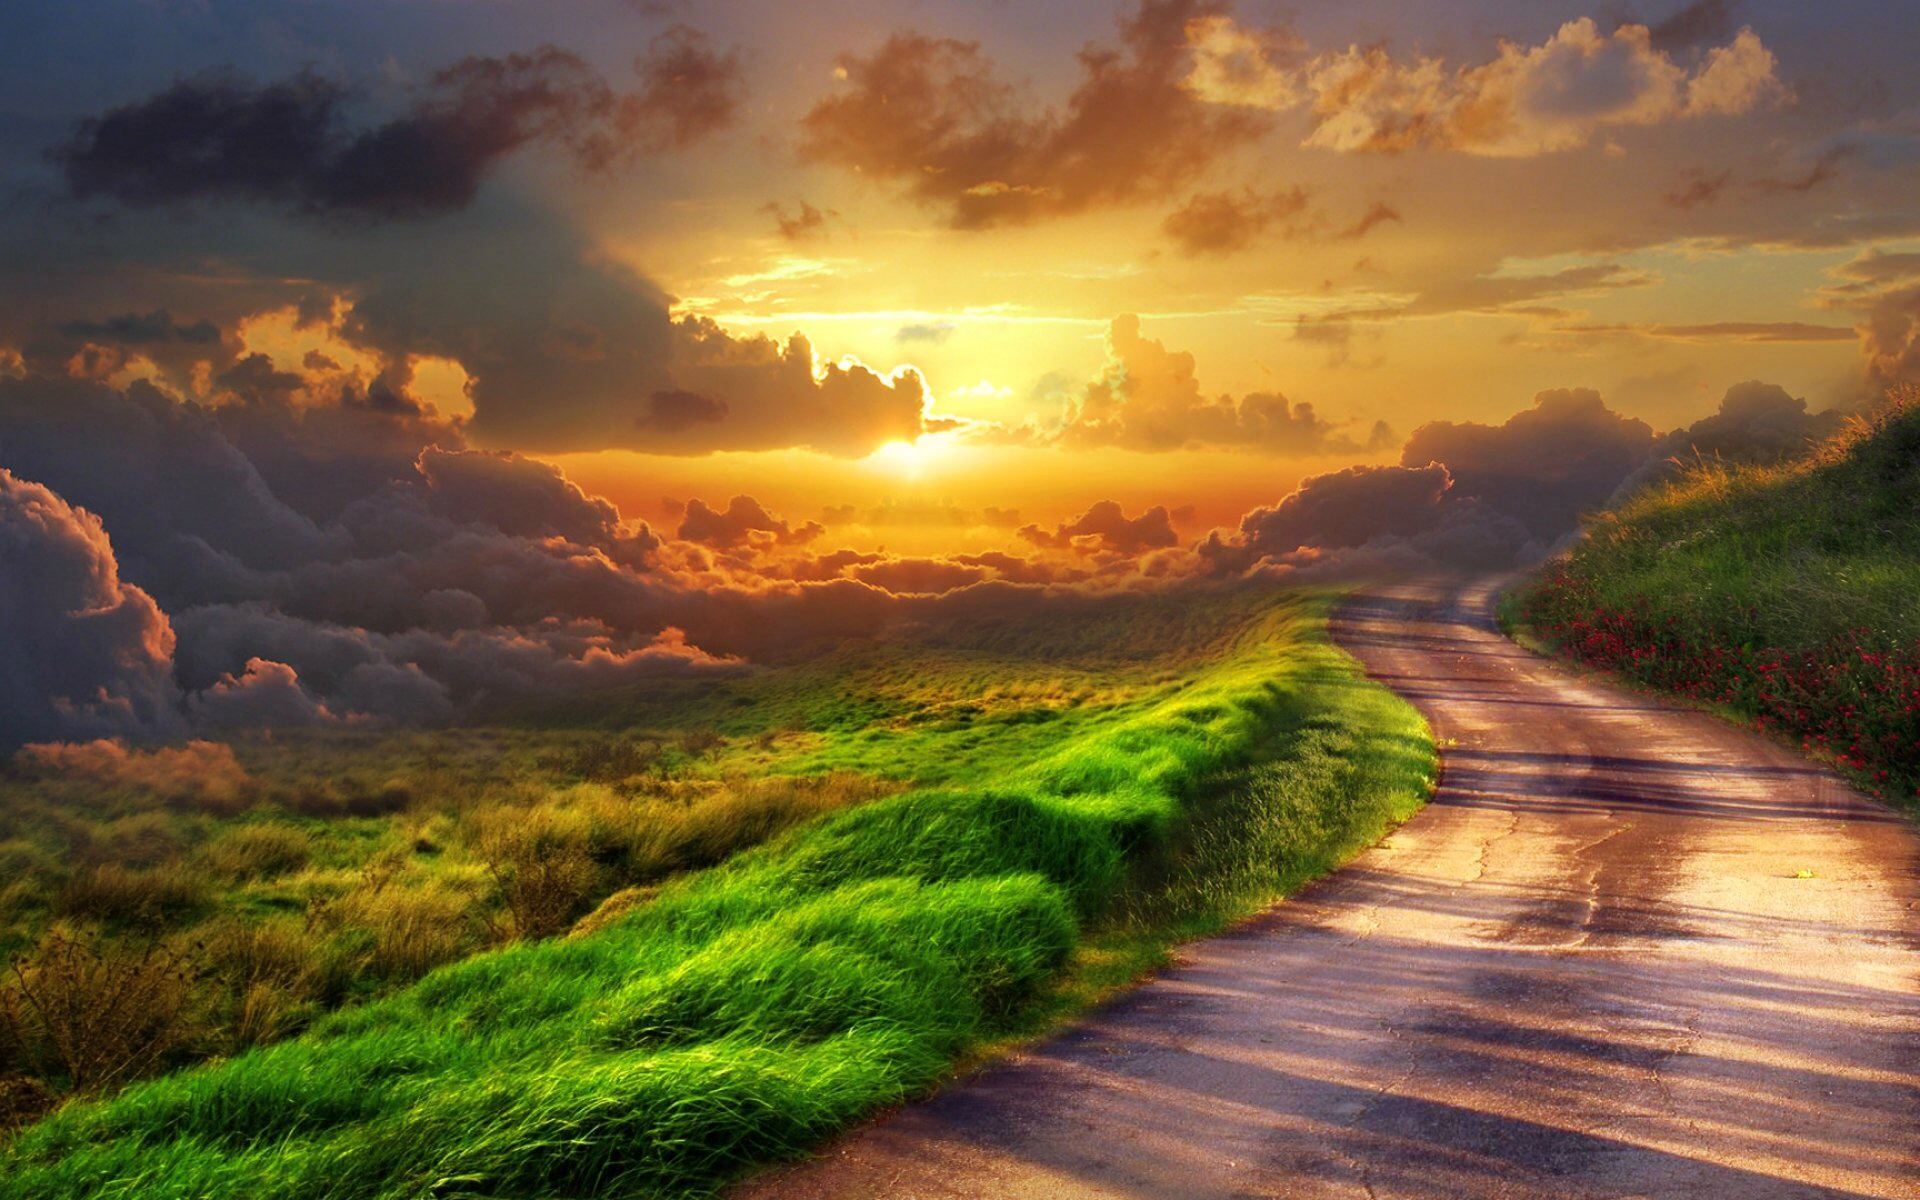 Road to heaven - Heaven Photo (39496603) - Fanpop